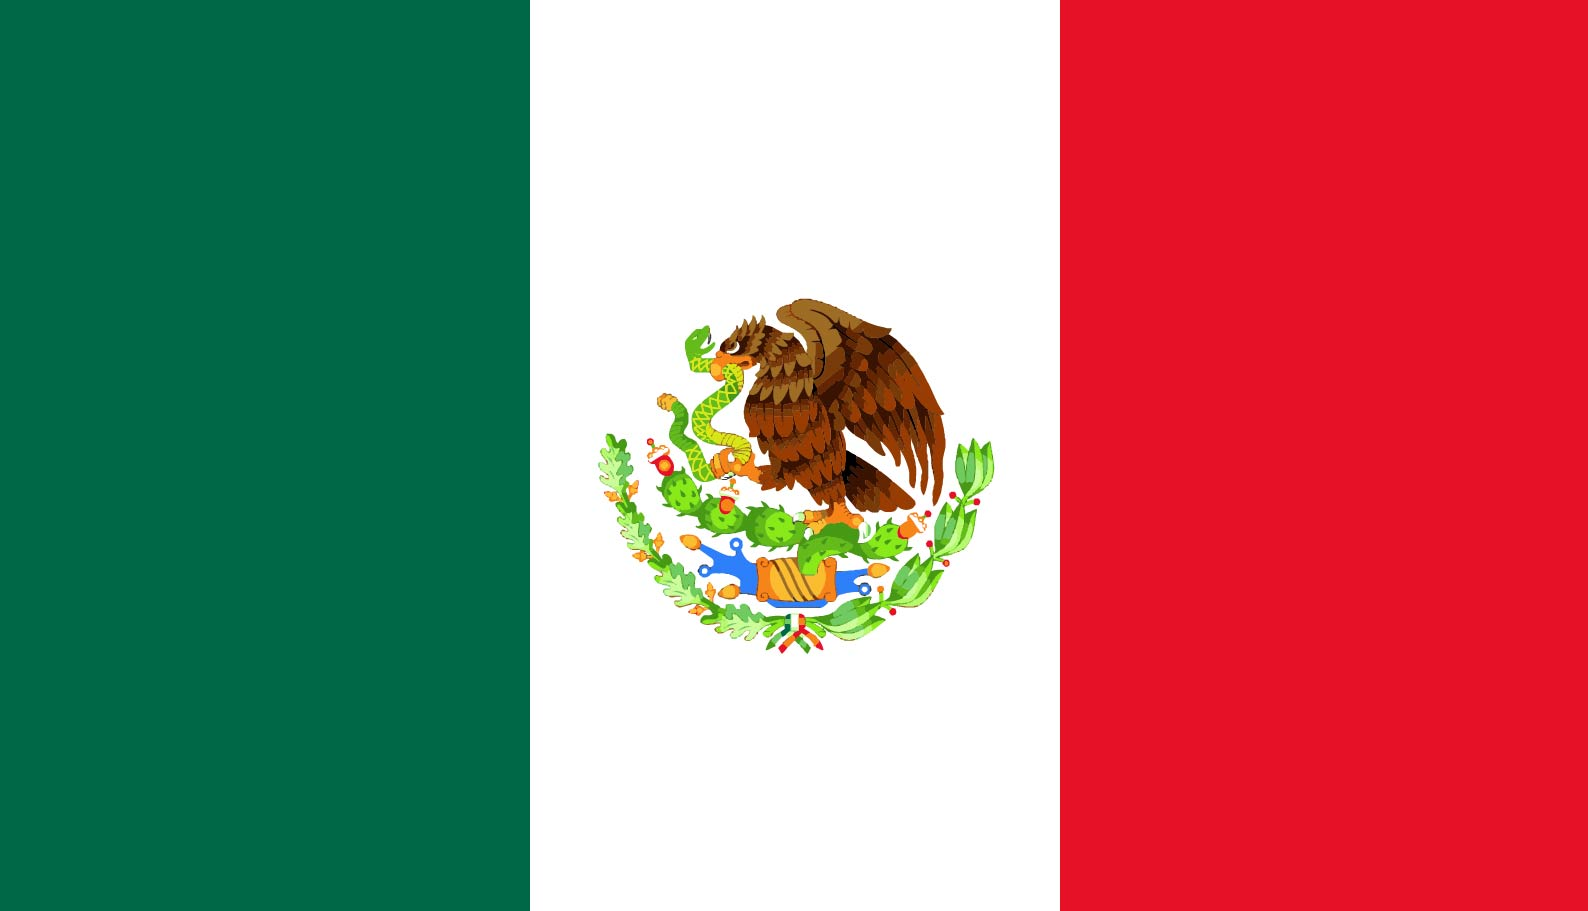 mexicanflag.jpg